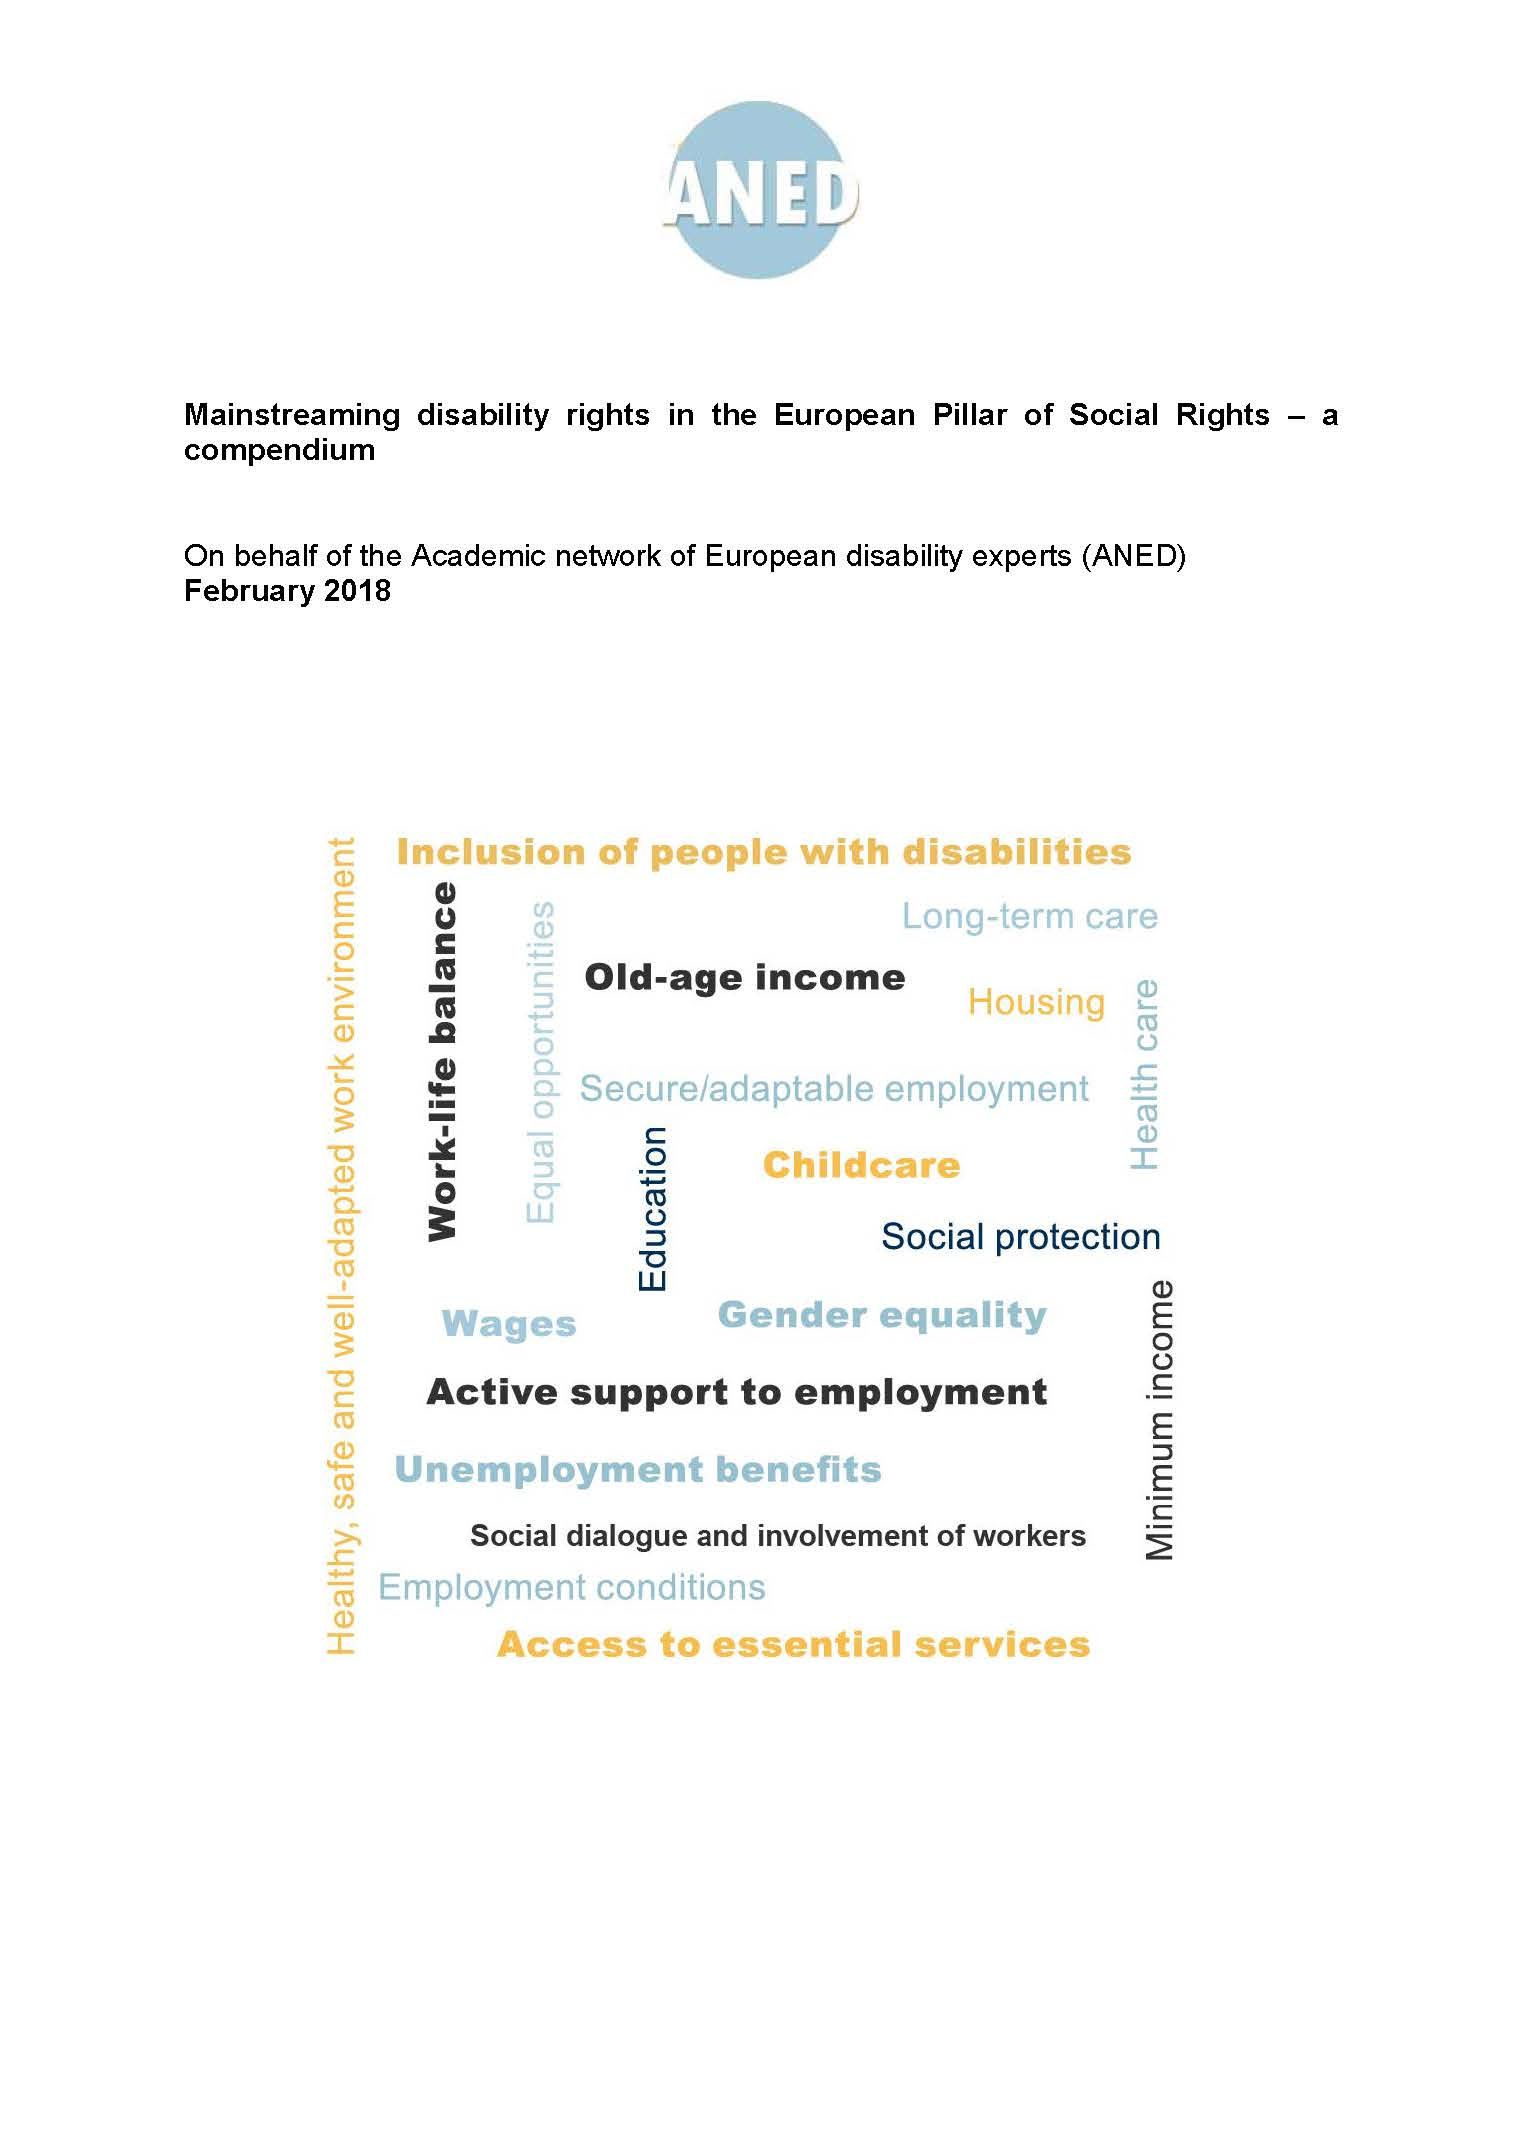 Mainstreaming disability rights in the European Pillar of Social Rights – a compendium